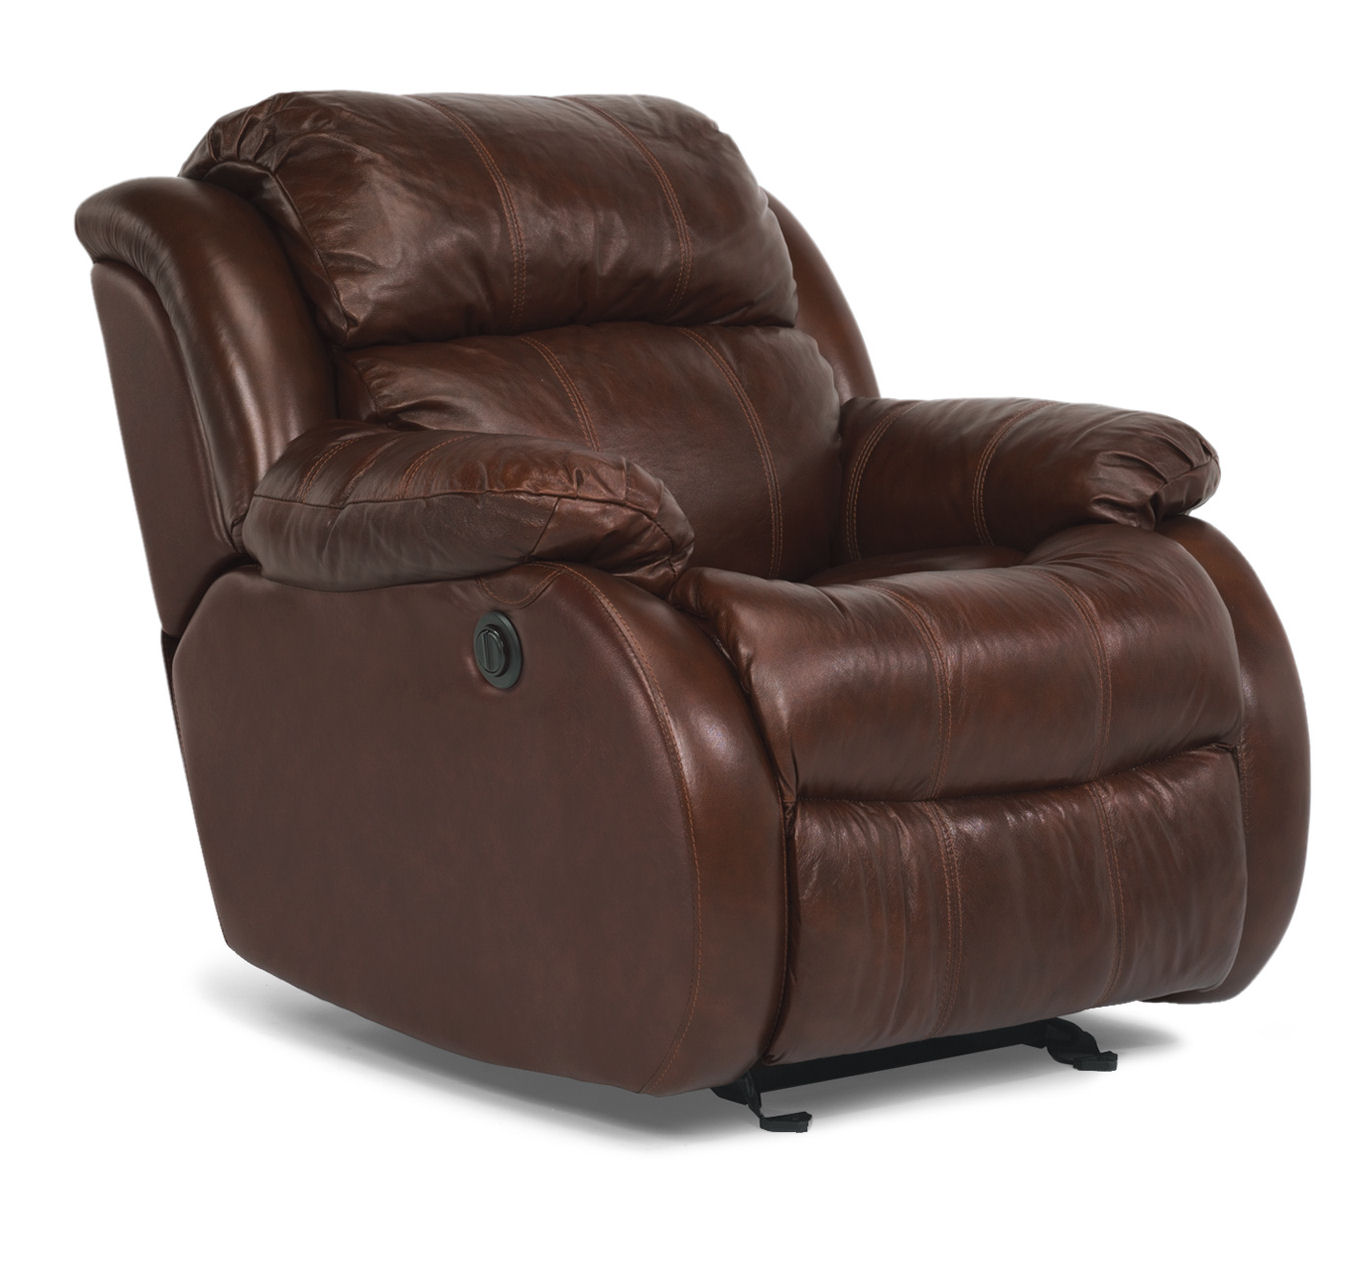 Flexsteel Recliner From Bob Mills Furniture